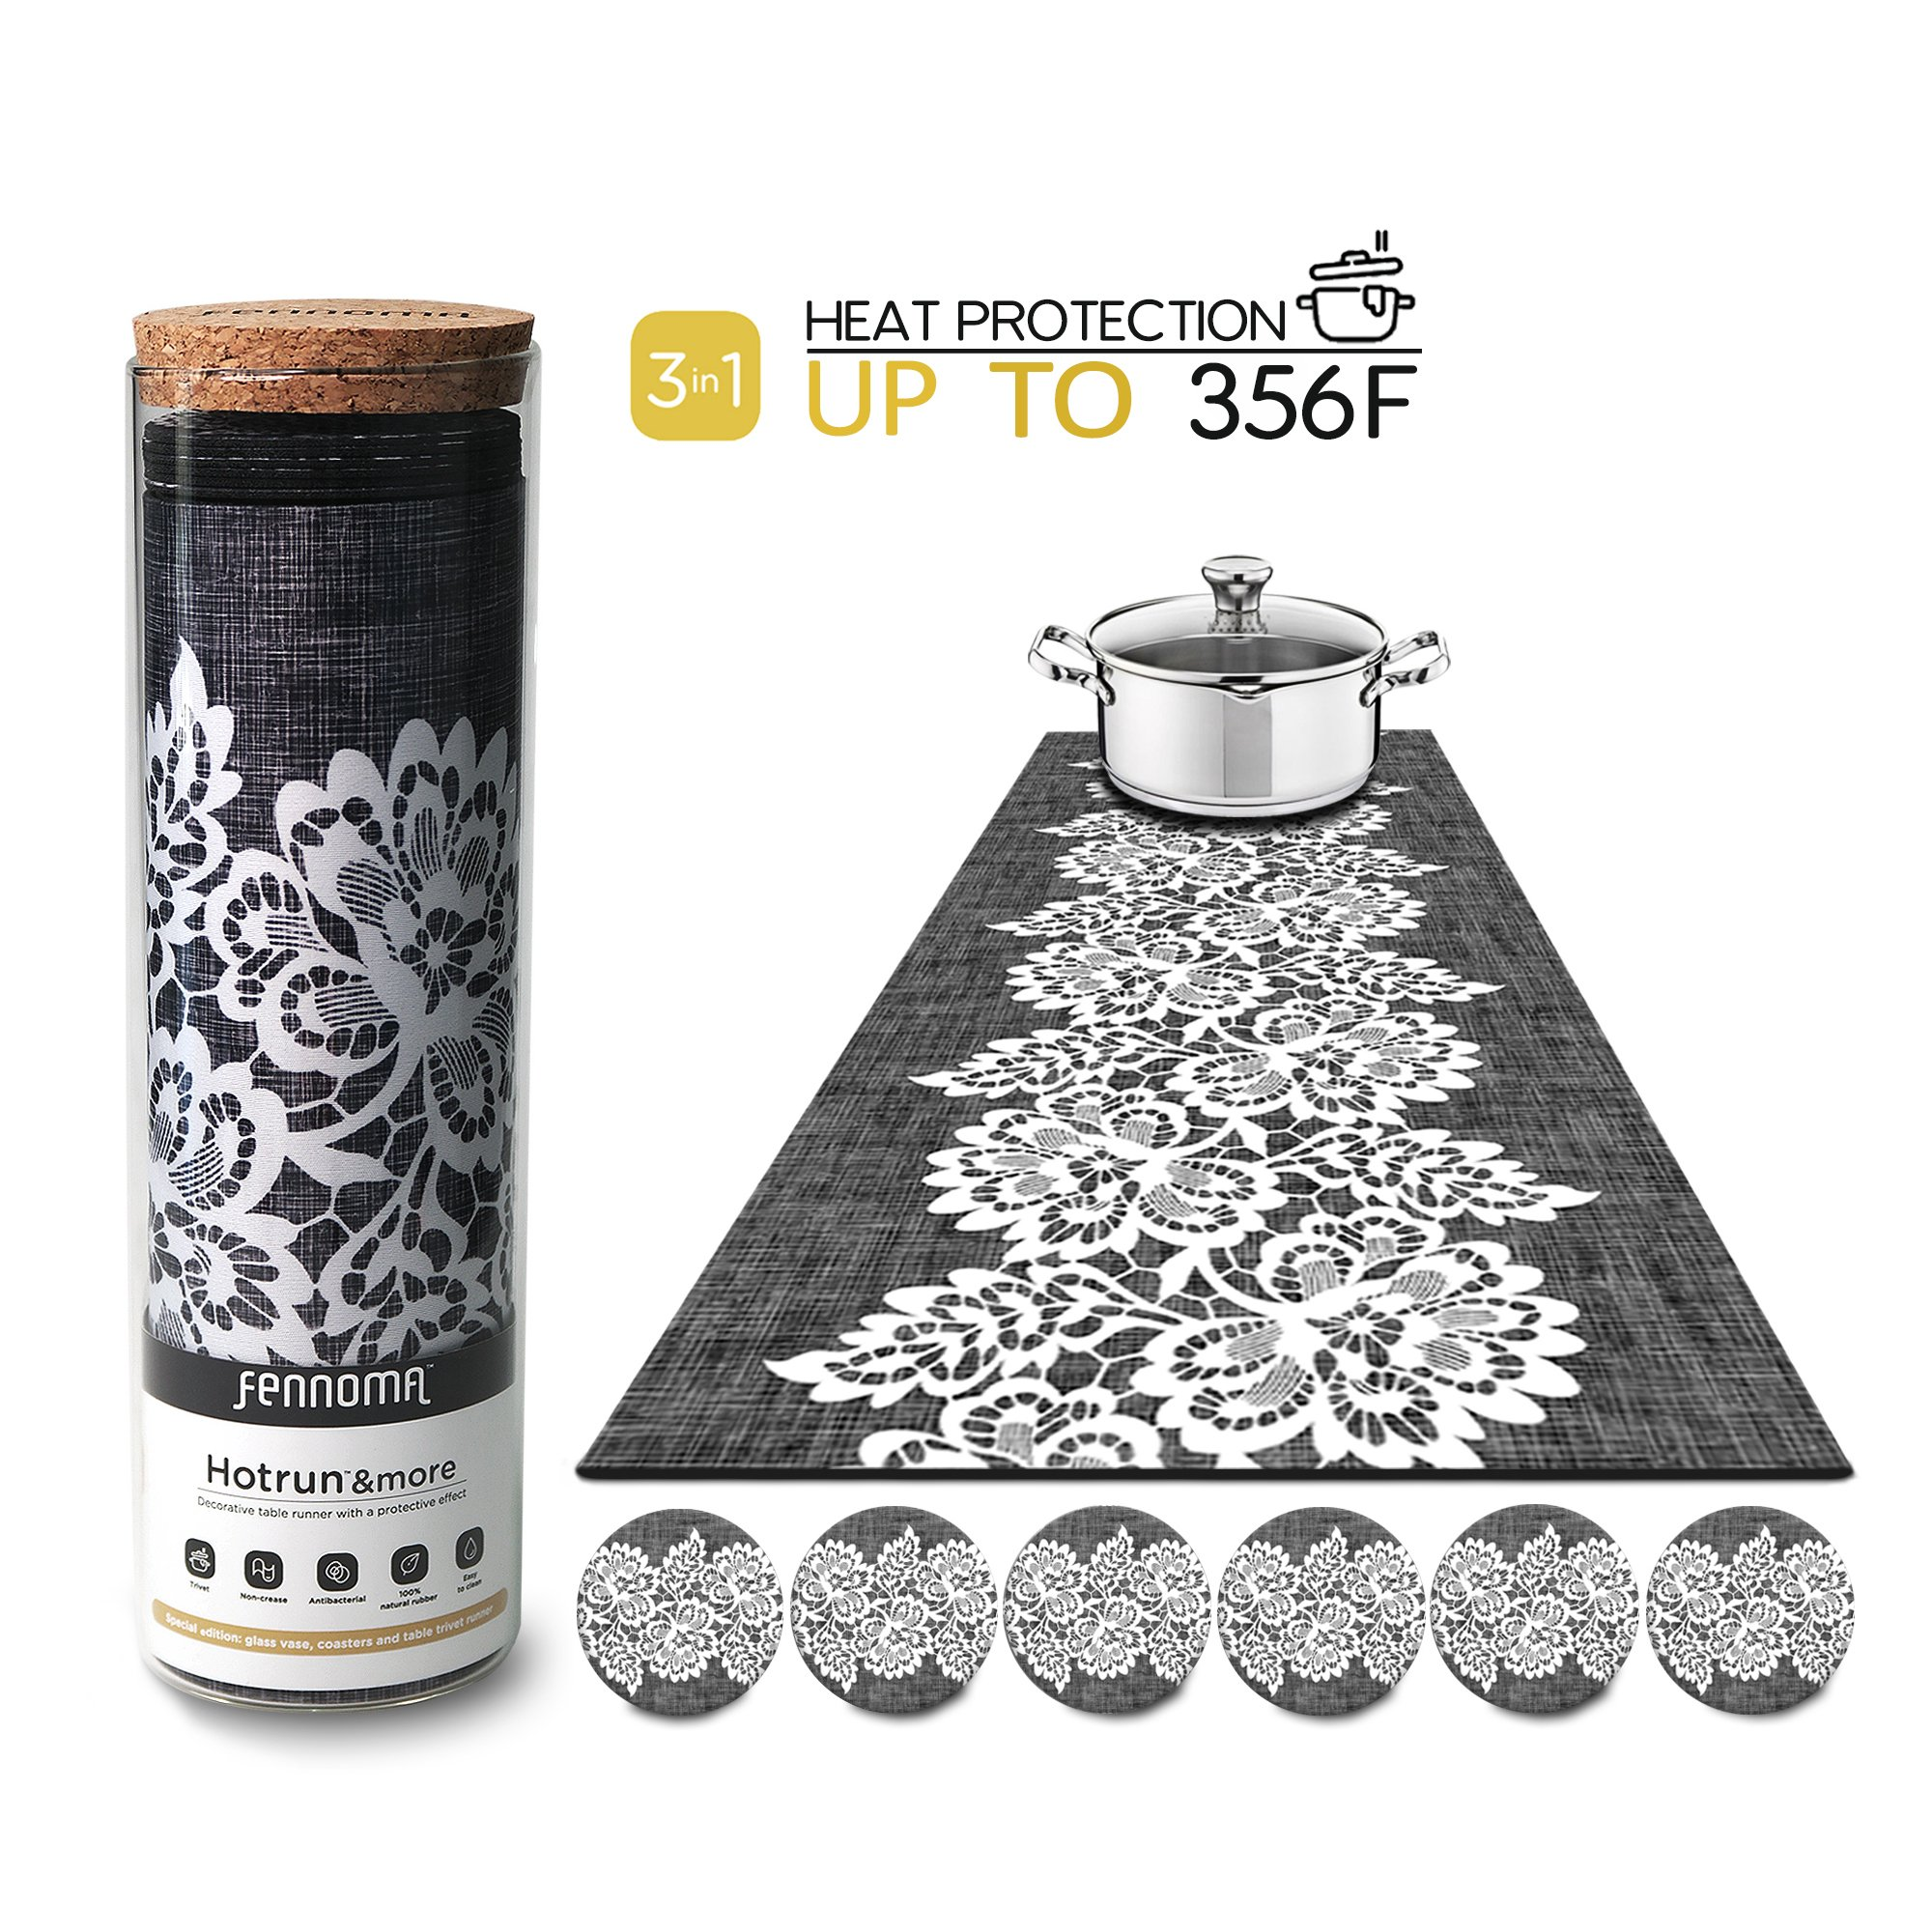 Hotrun - 3 in 1 - Trivet and Decorative Table Runner With Coasters (6 pcs) Handles Heat Up to 356F, Anti Slip, Waterproof, and Convenient for Hot Dishes and Pots + Glass Vase (Canvas & lace) by Fennoma